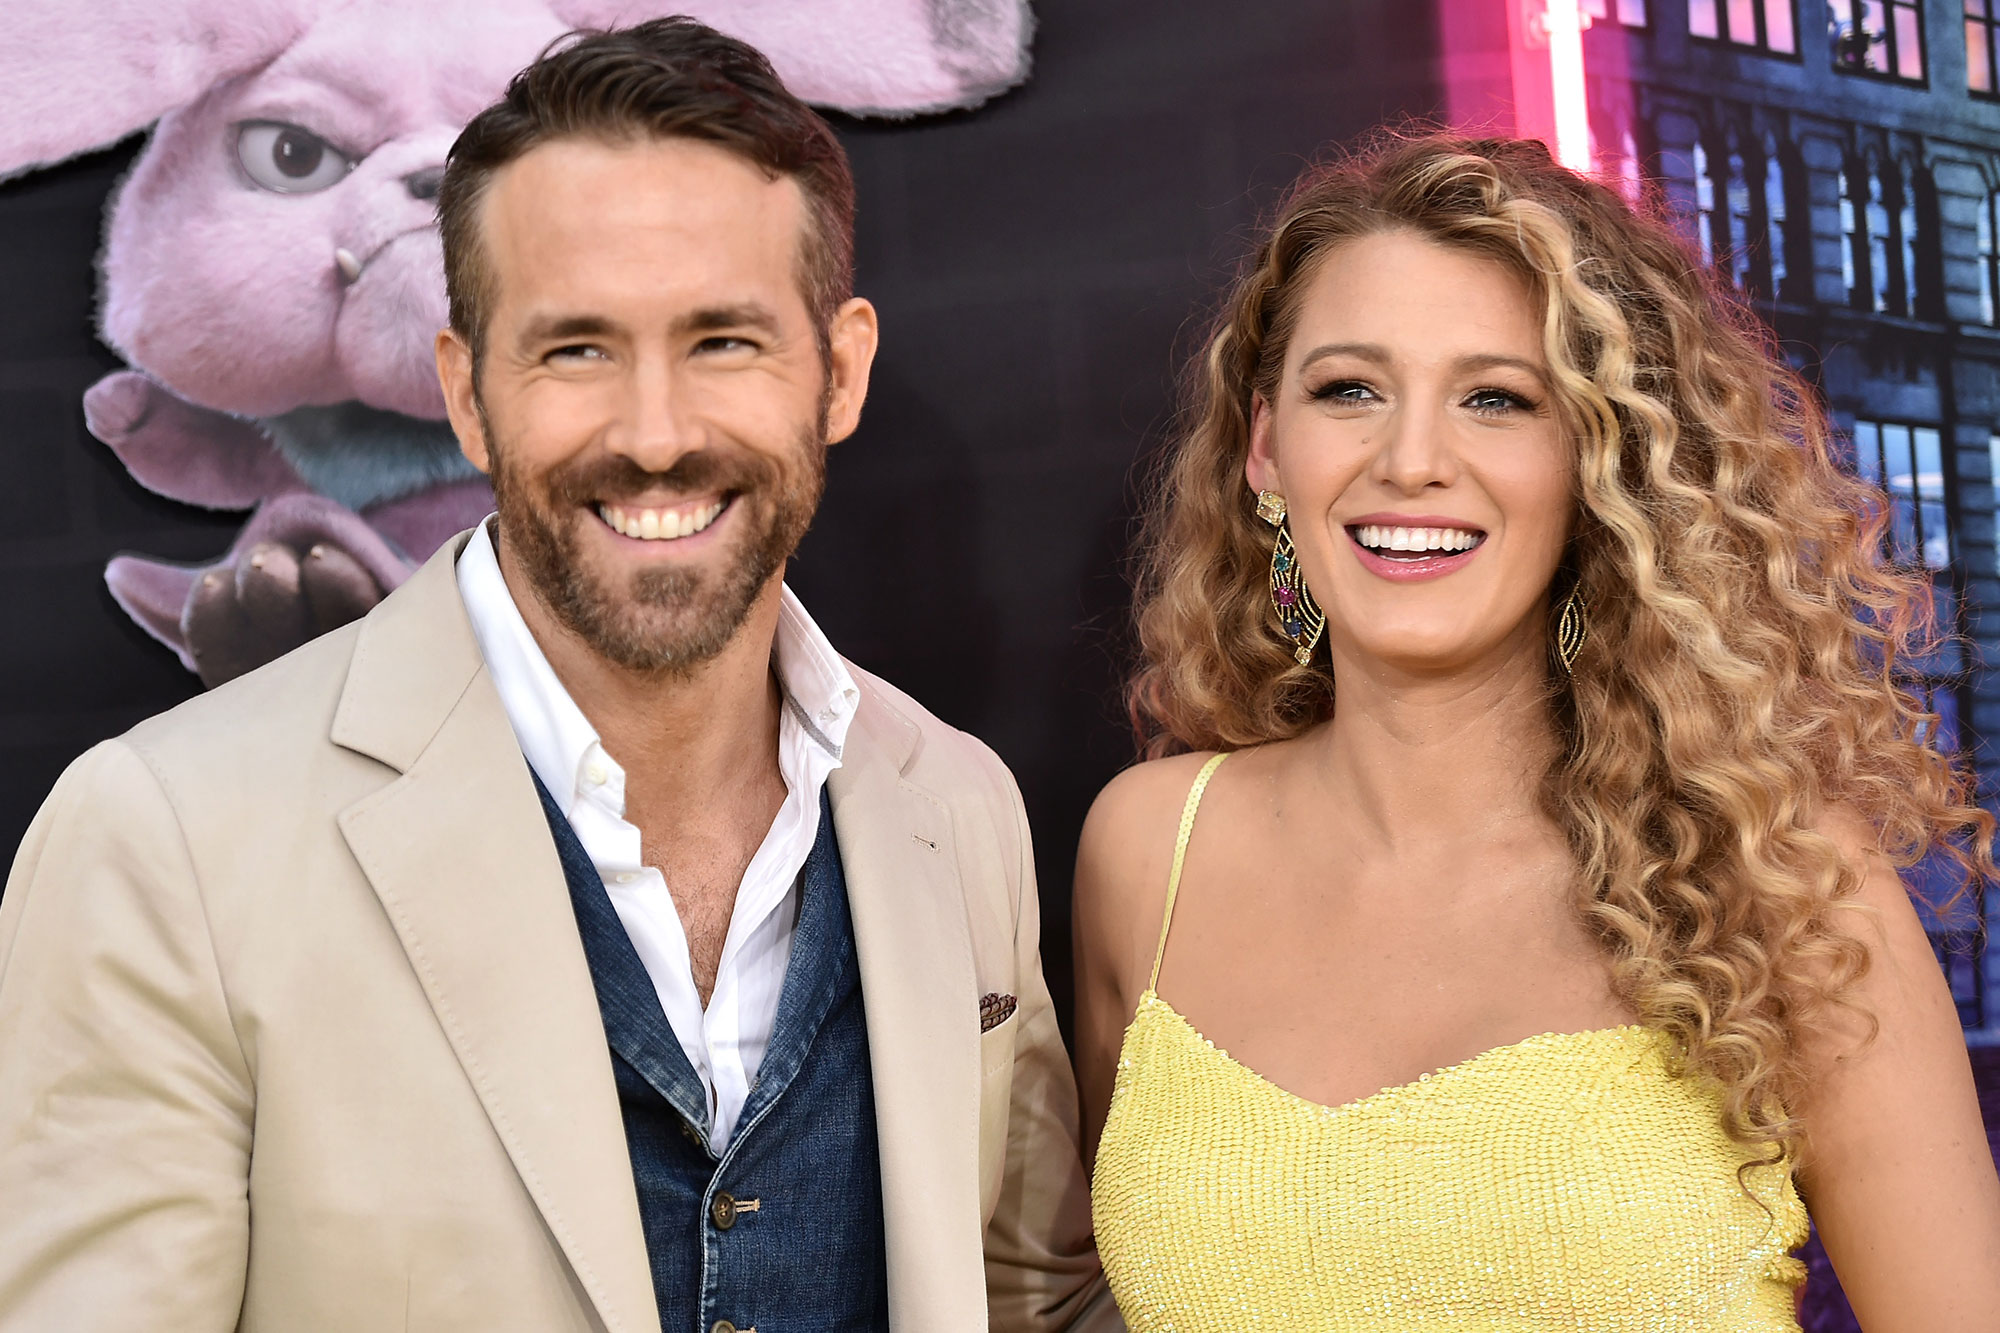 """Ryan Reynolds and Blake Lively attend the premiere of """"Pokemon Detective Pikachu"""" at Military Island in Times Square on May 2, 2019 in New York"""